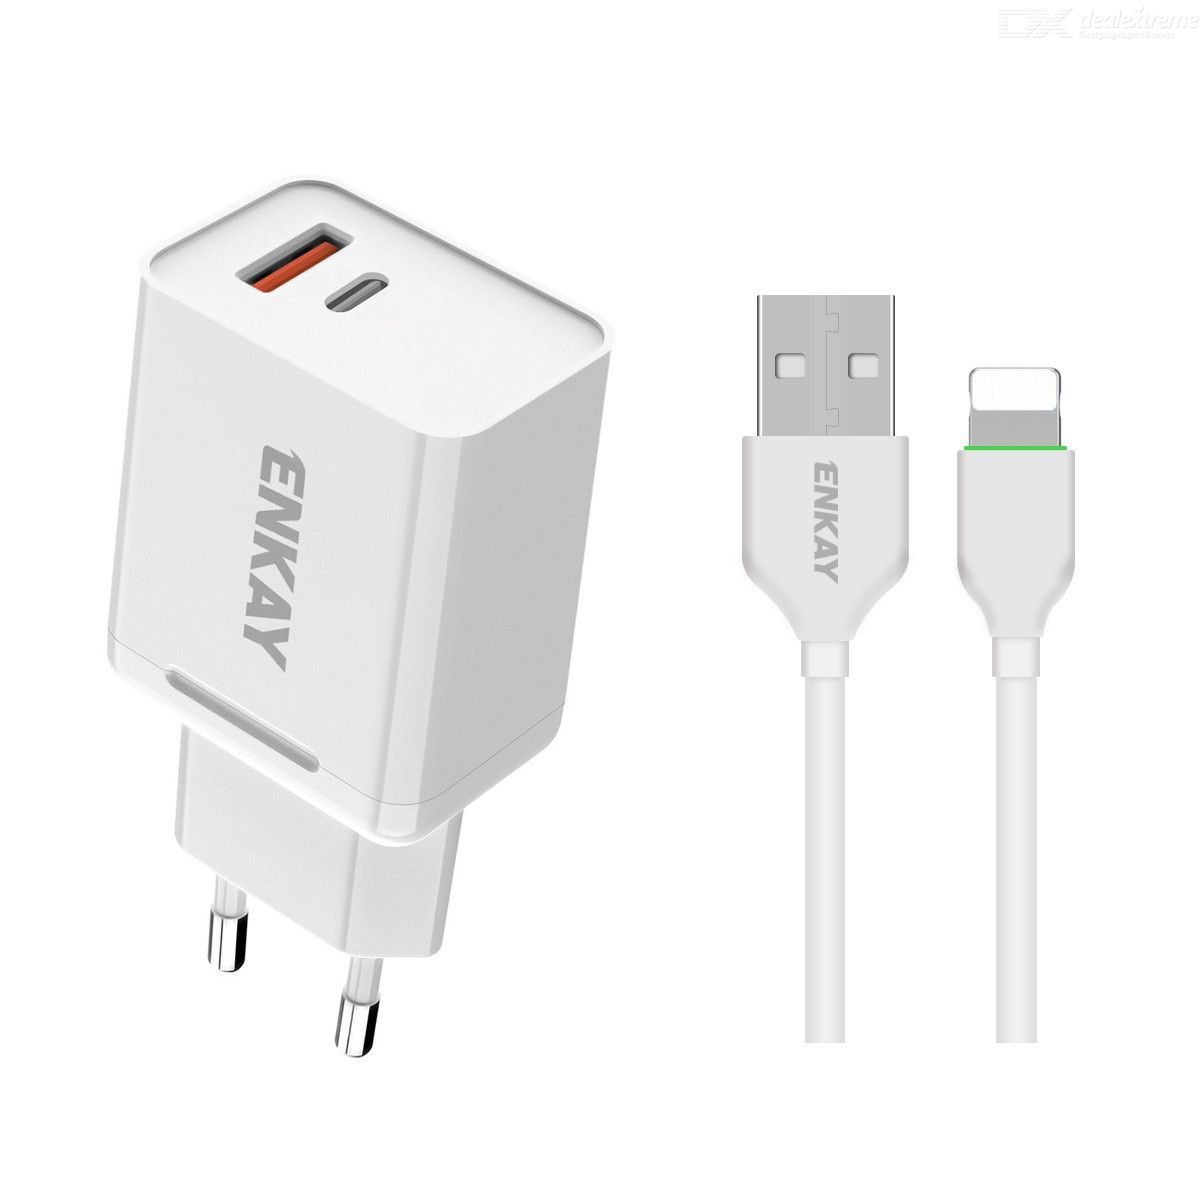 Hat-prince enkay 18w usb + type-c power adapter qc3.0 pd super fast charging eu plug portable travel charger with 8 pin cable